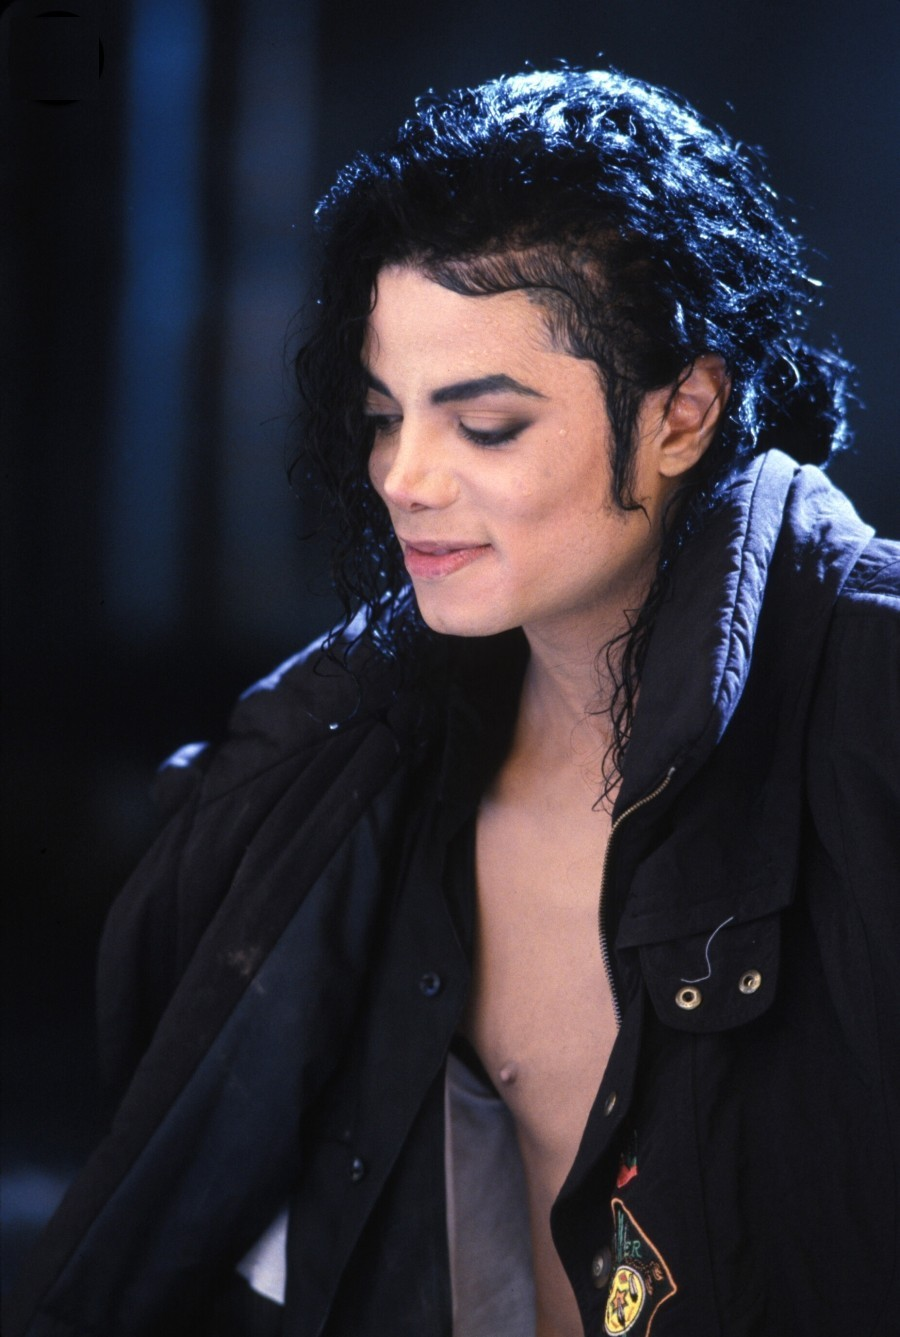 black or white Black or white is one of michael jackson's songs in the albums dangerous and history: past.